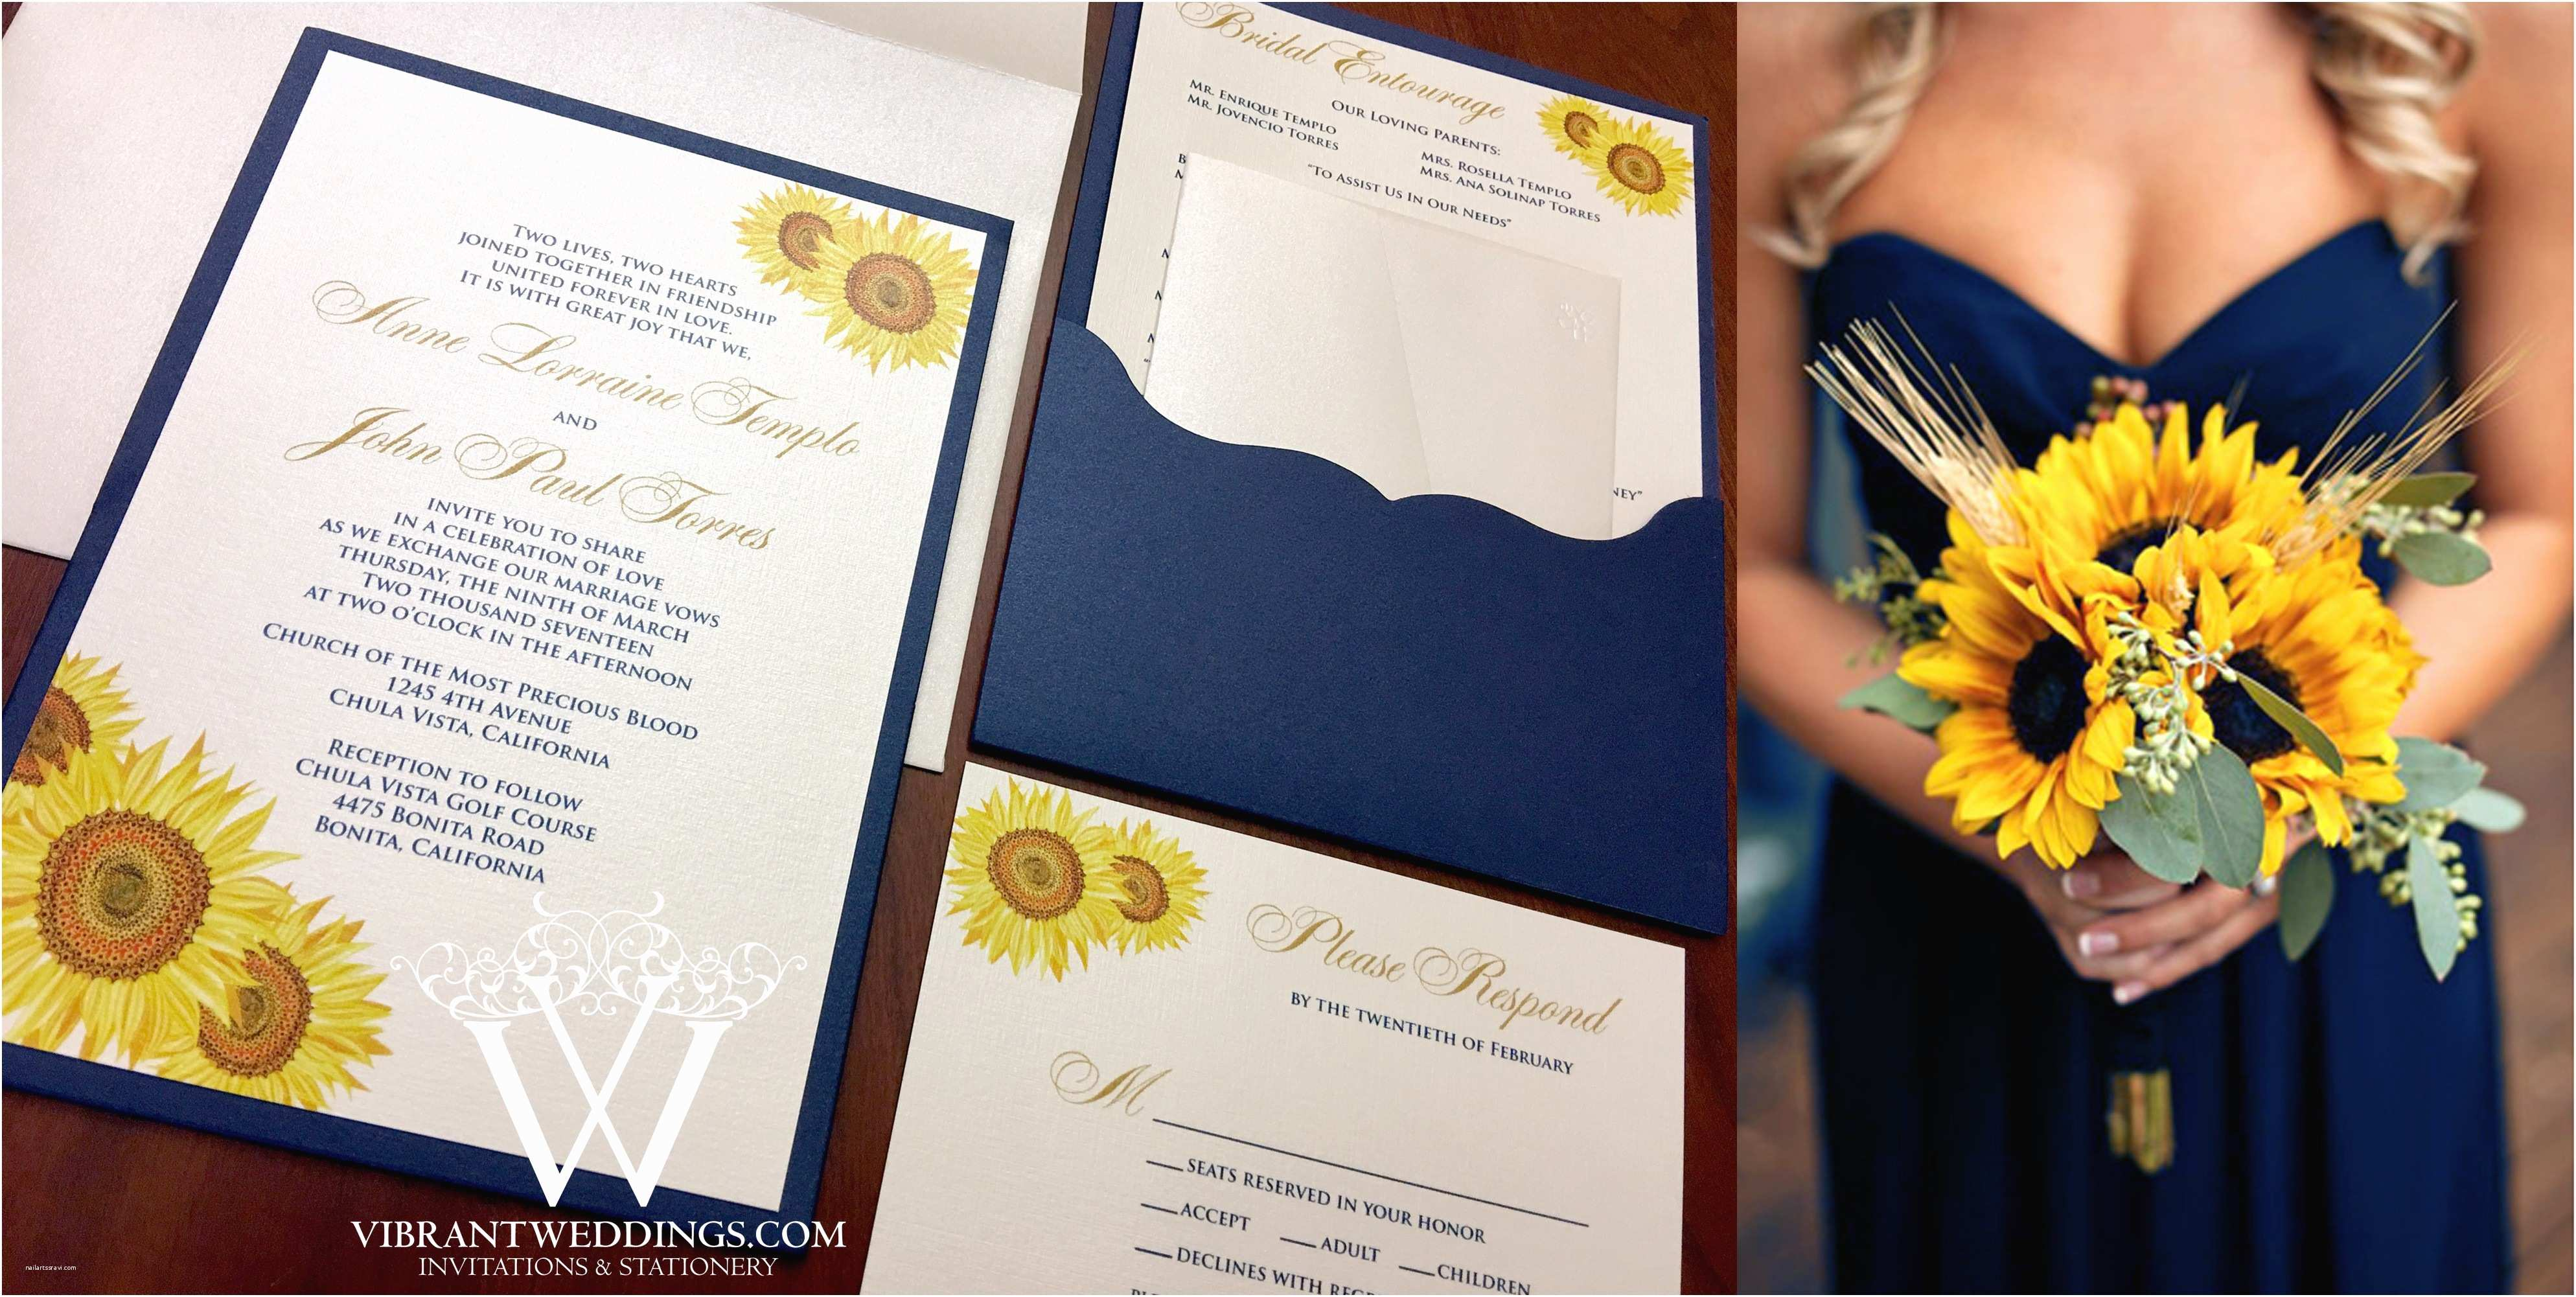 Navy Blue and Sunflower Wedding Invitations Navy Blue and Sunflower Wedding Invitations Nice Navy Blue